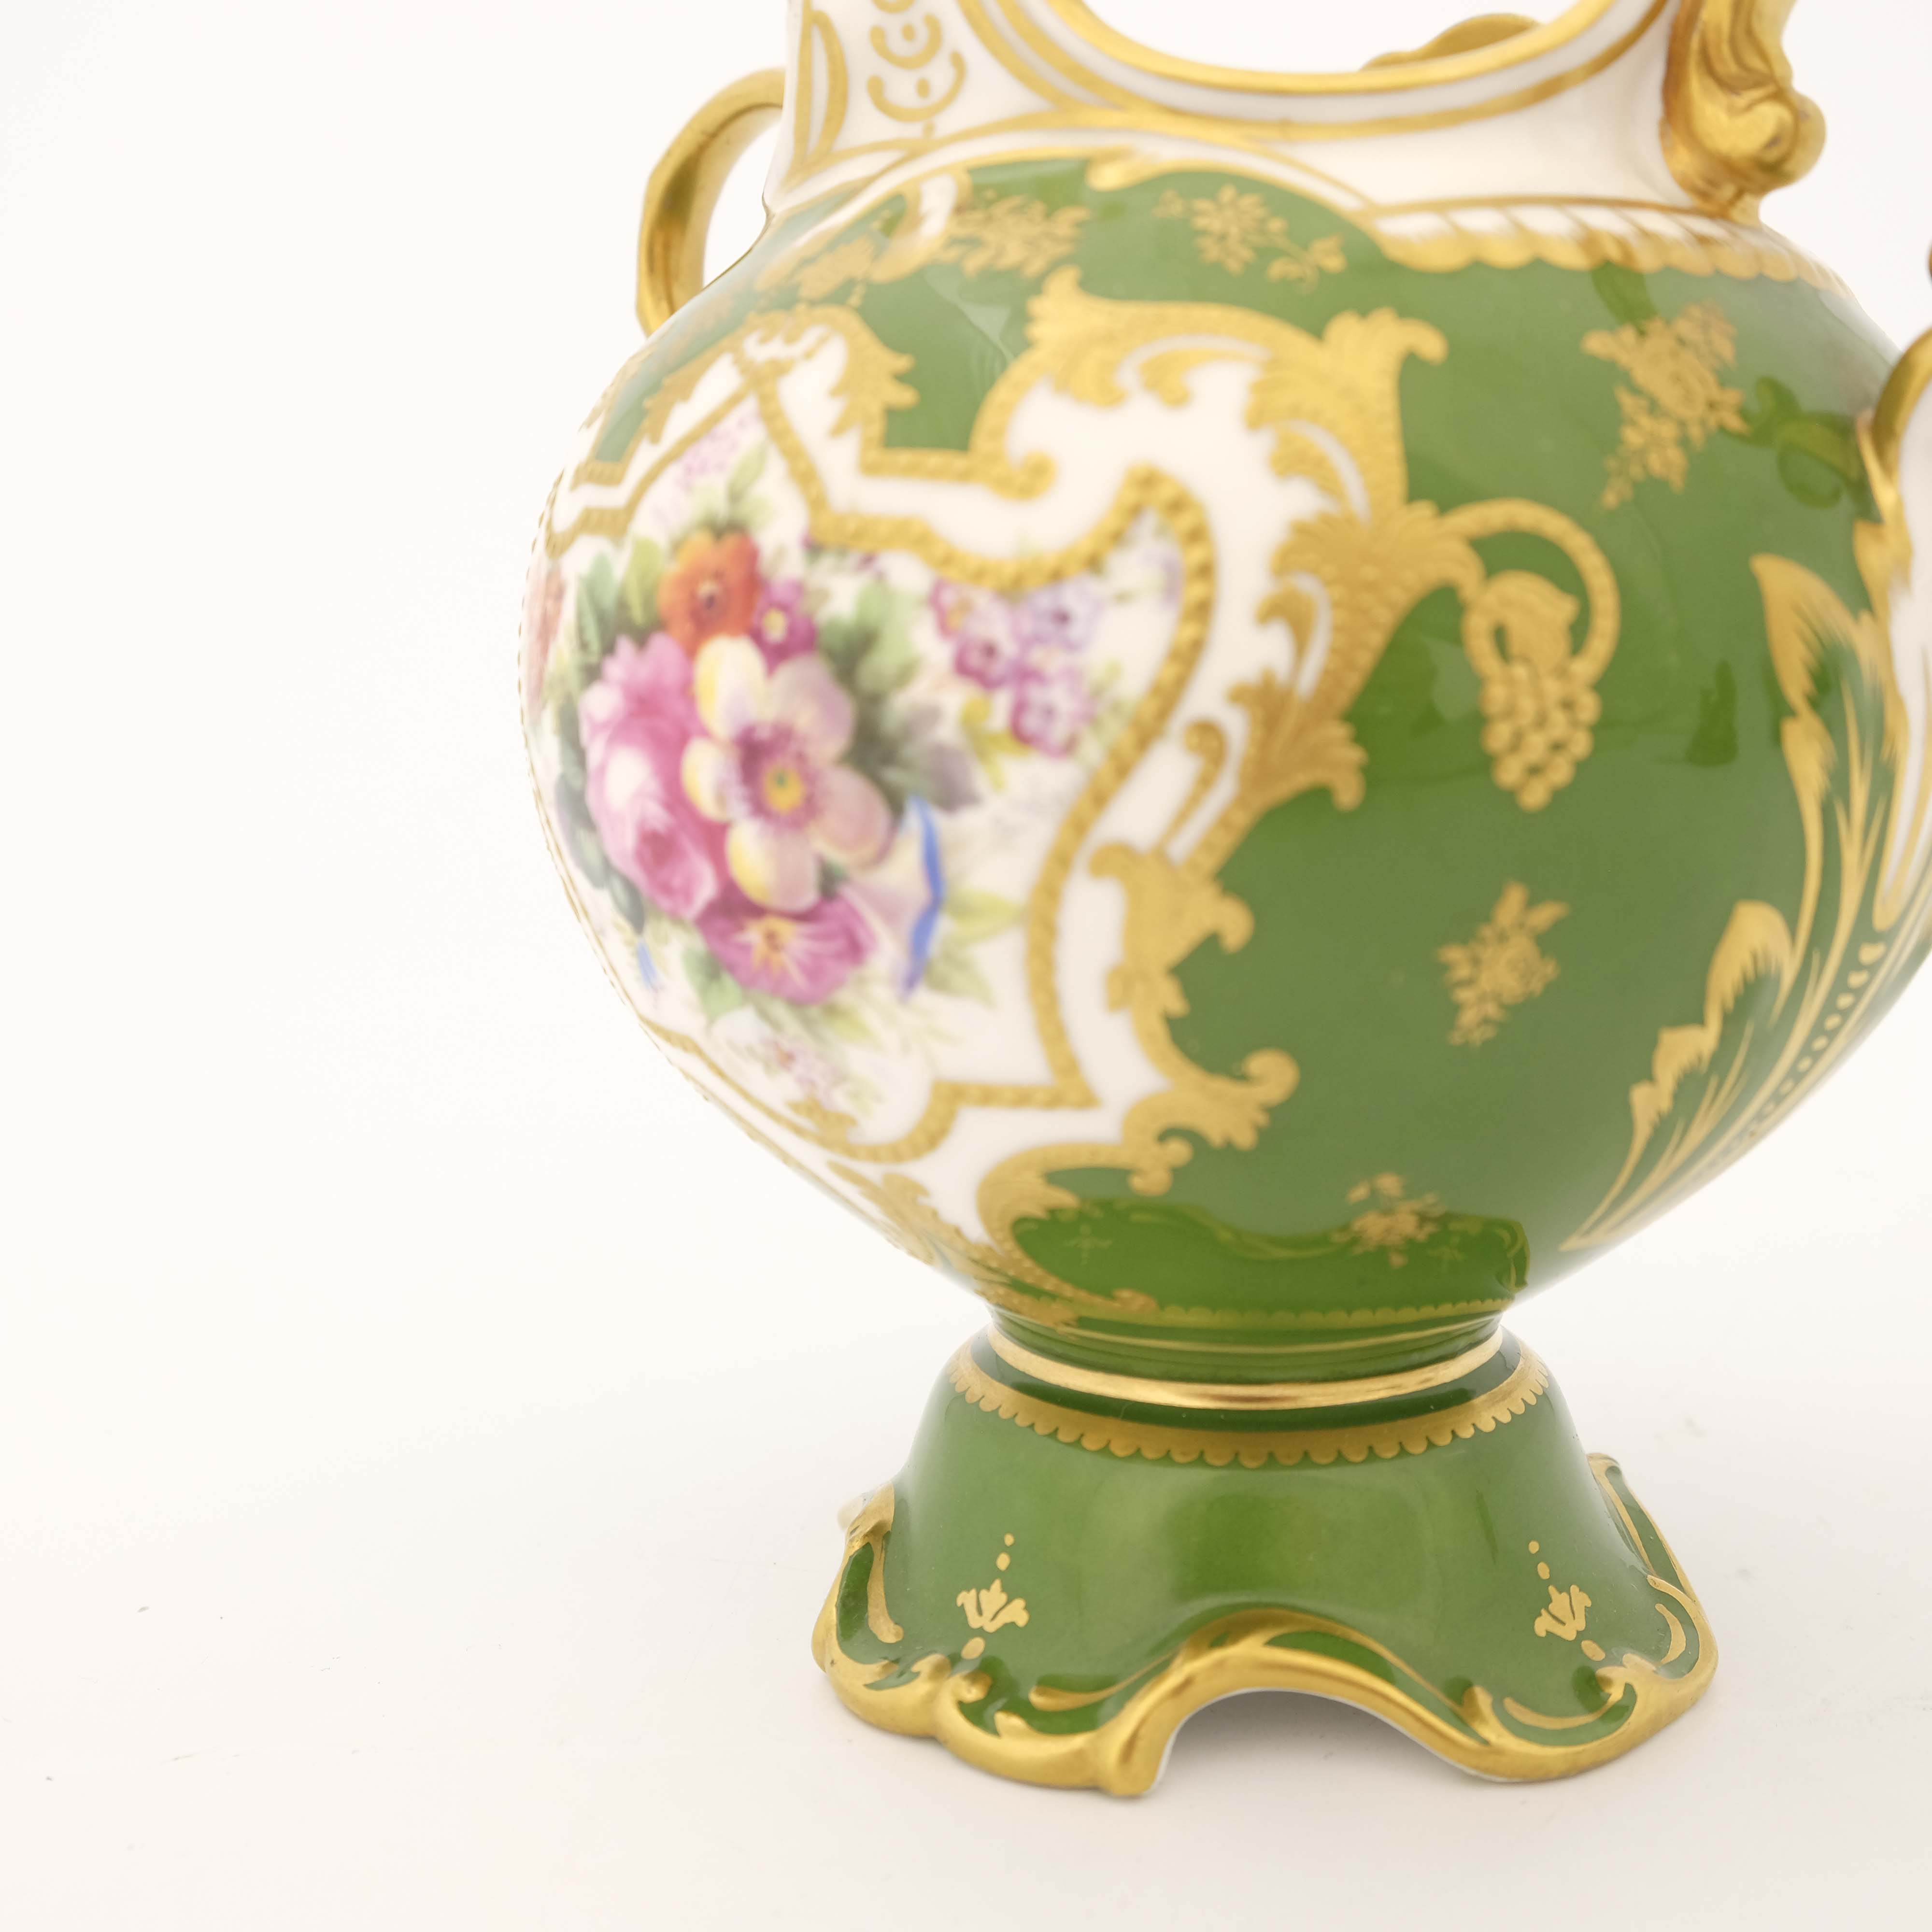 Edwin Wood for Royal Doulton, a floral painted twin handled vase - Image 7 of 7